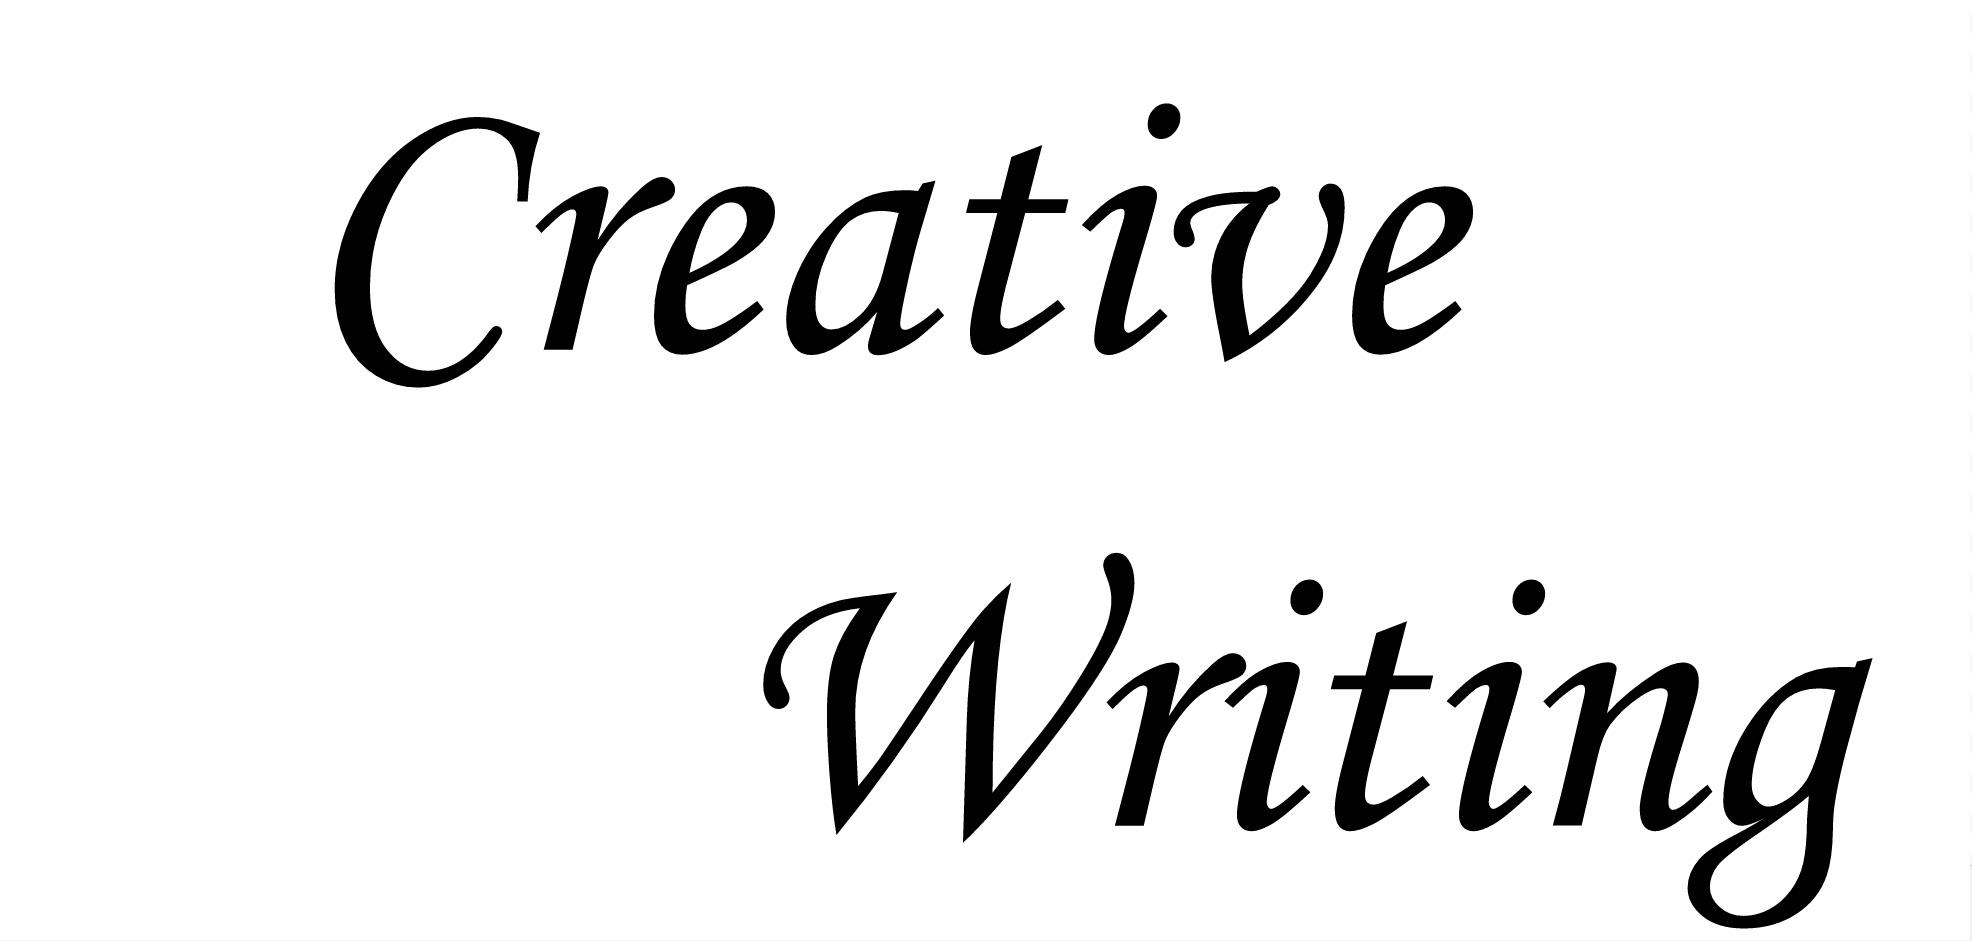 iowa graduate school creative writing The program in creative writing, more commonly known as the iowa writers' workshop, at the university of iowa in iowa city, iowa, is a much-celebrated graduate-level creative writing program in the united states.